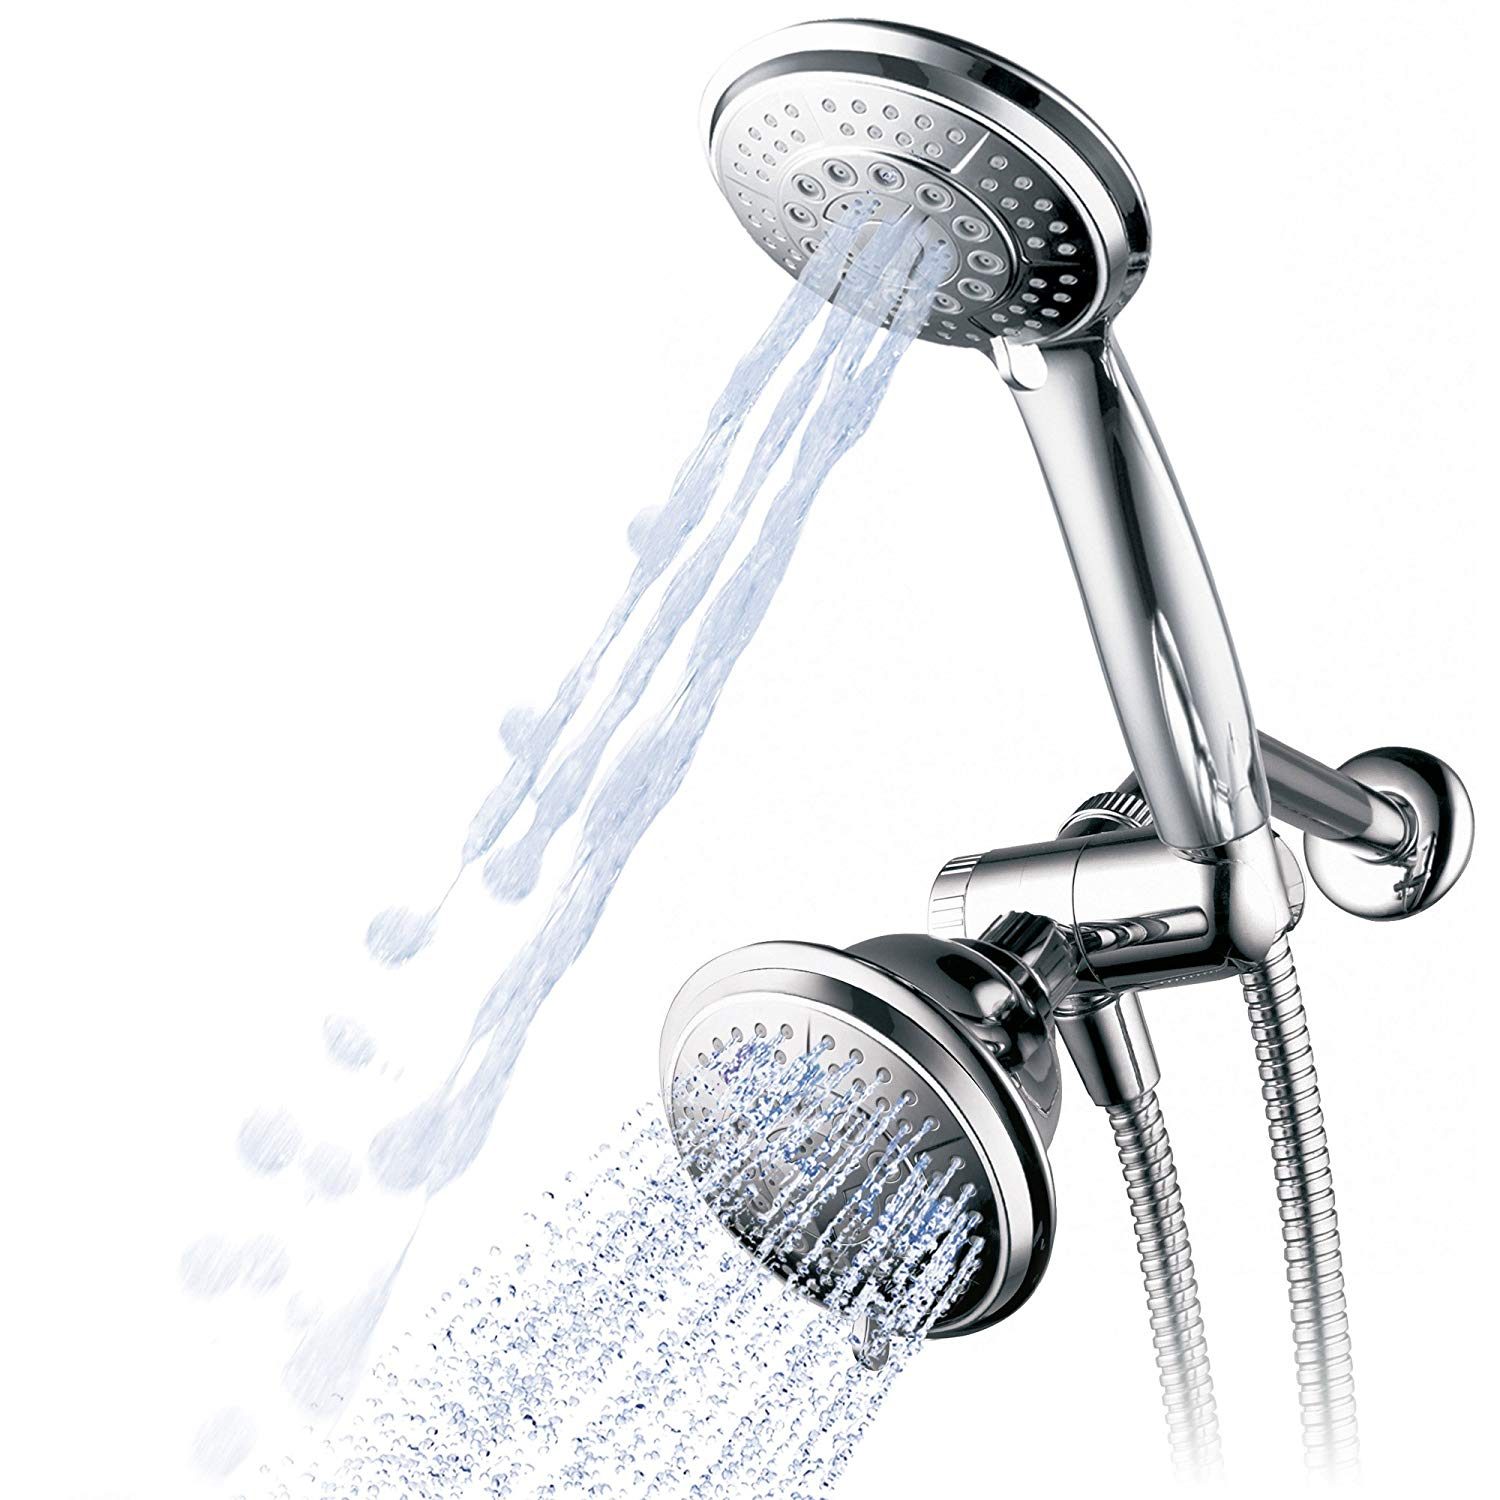 Hydroluxe 1433 Handheld Shower Head